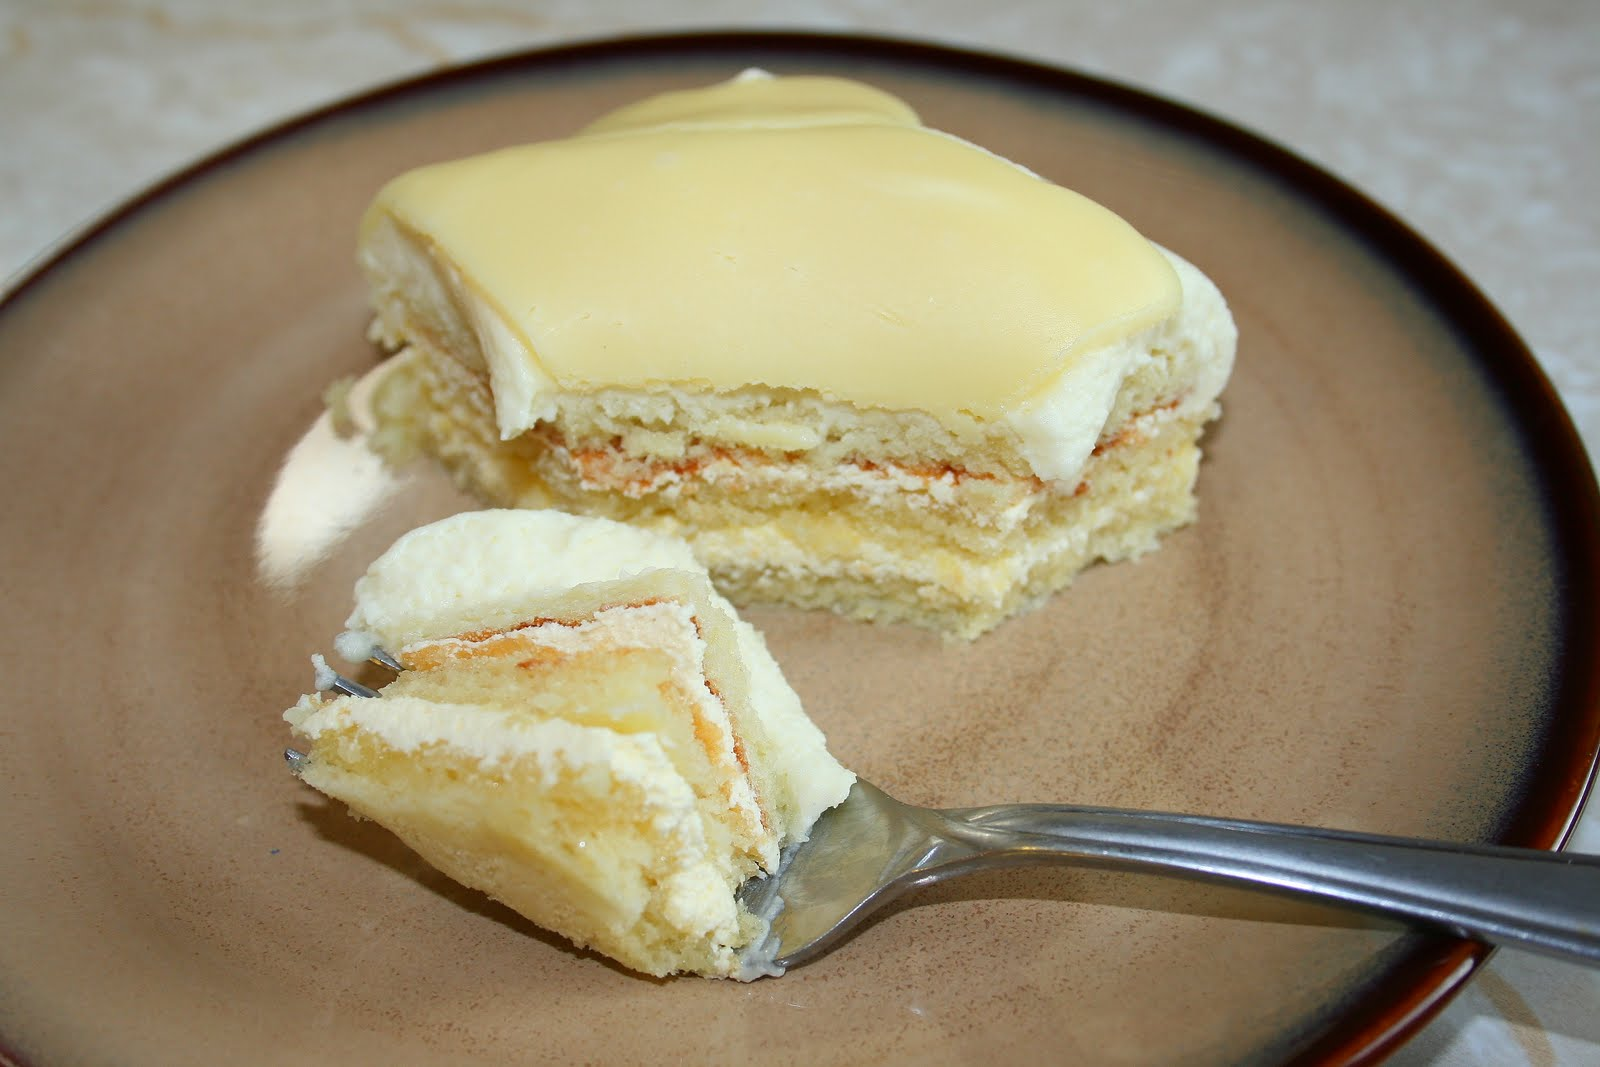 ... cake white chocolate amaretto cake white chocolate amaretto cake jpg